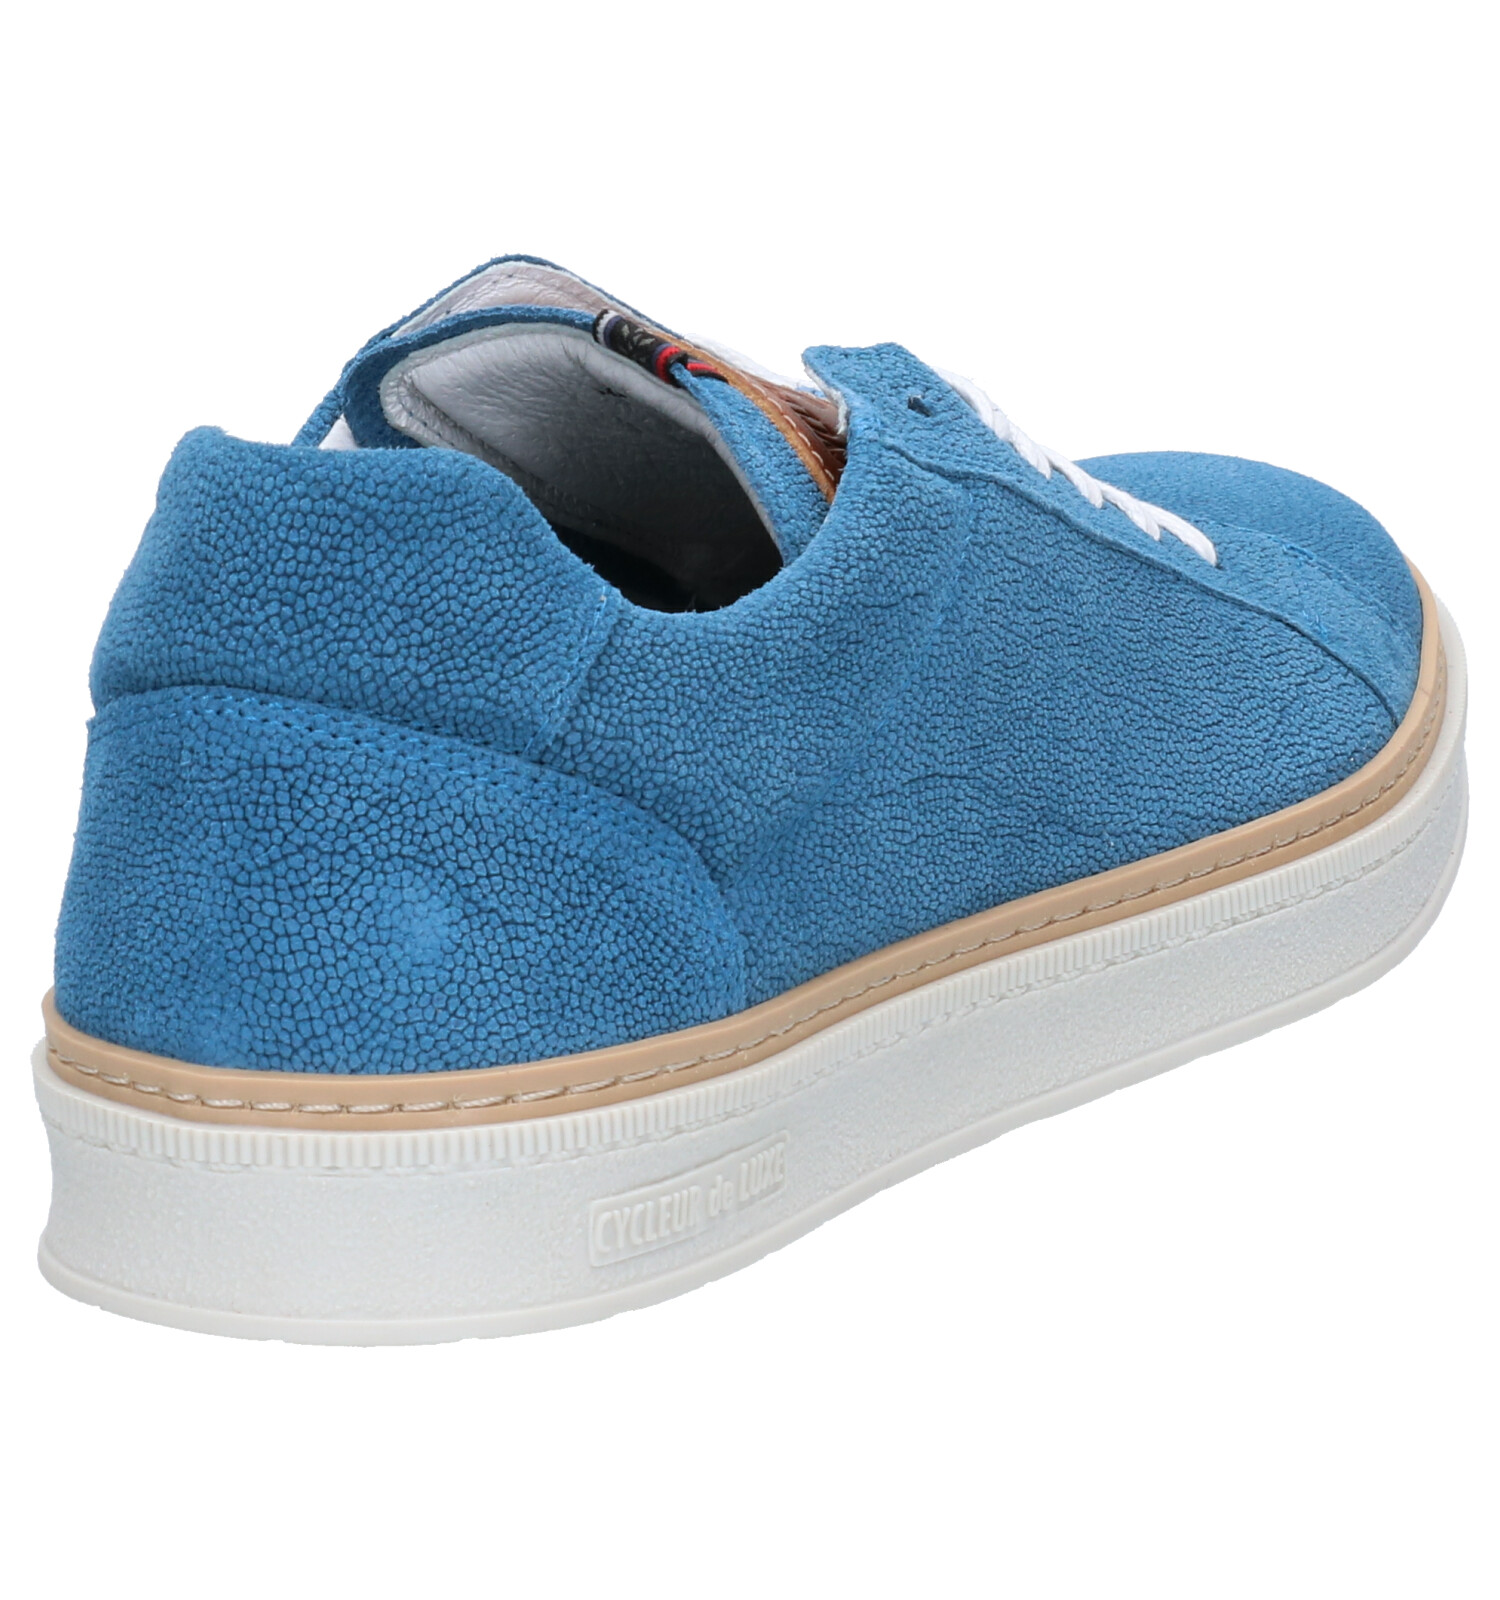 Cycleur Veterschoenen Luxe De Blauwe Beaumont 8vmNwn0